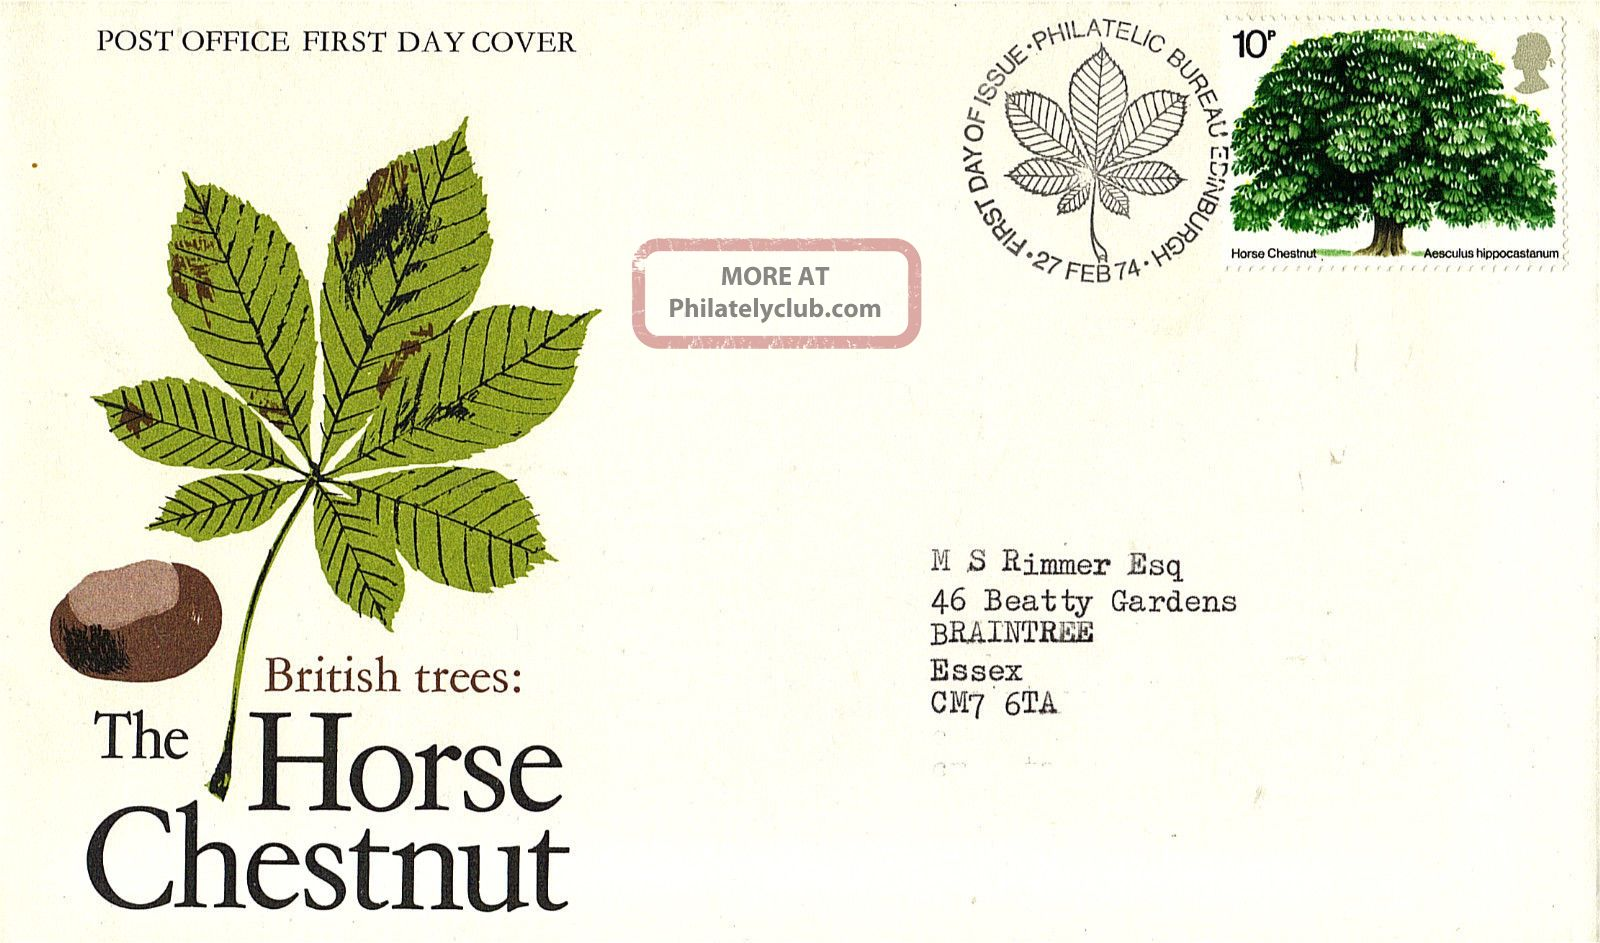 27 February 1974 The Horse Chestnut Tree Po First Day Cover Bureau Shs Topical Stamps photo